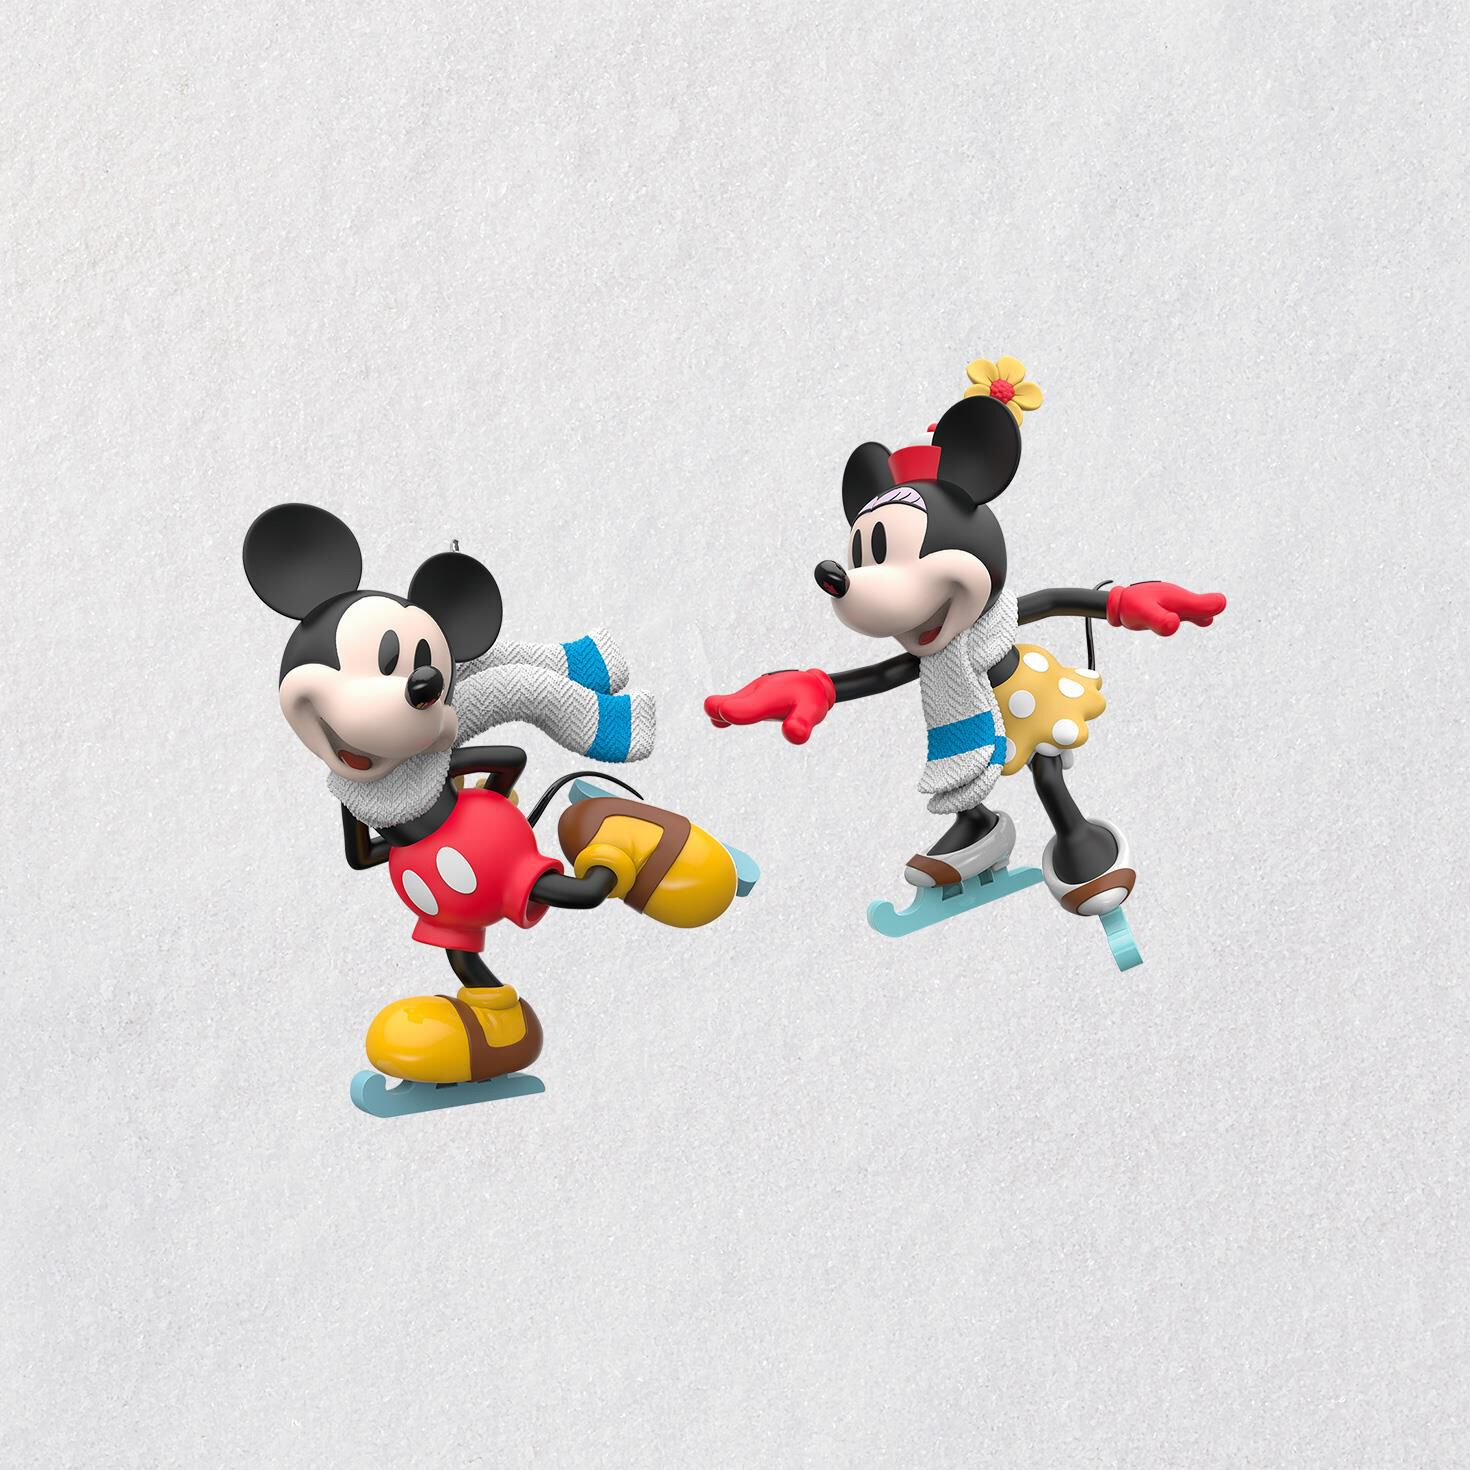 Disney Mickey and Minnie Mice on Ice Ornaments Set of 2 Keepsake